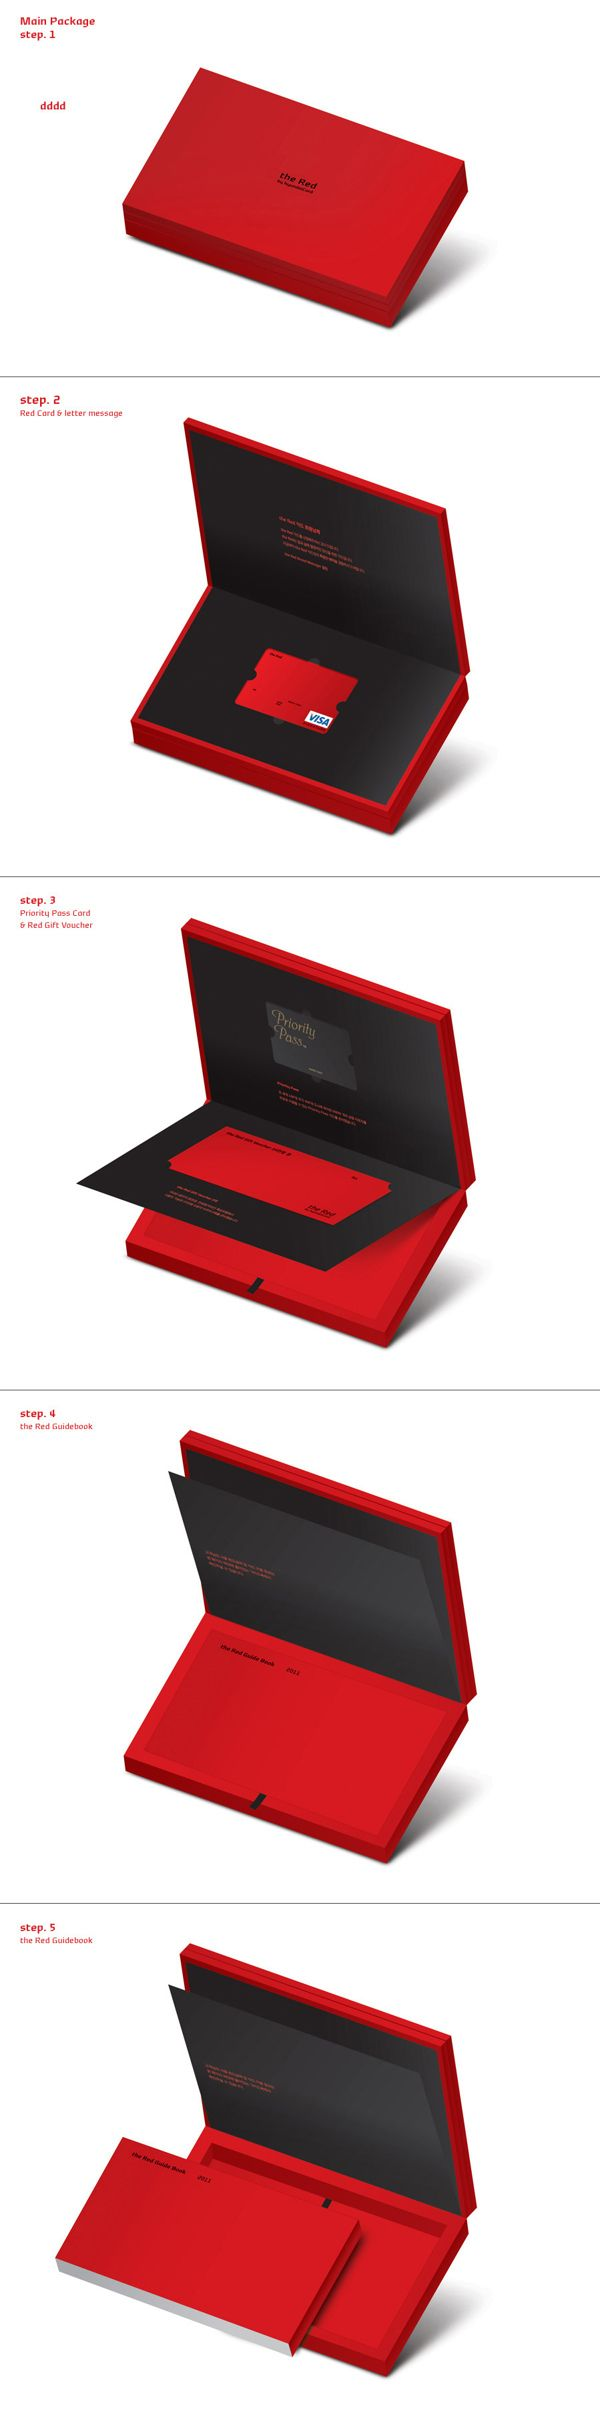 Hyundai Card the Red Package Renewal Project by Plus X , via Behance